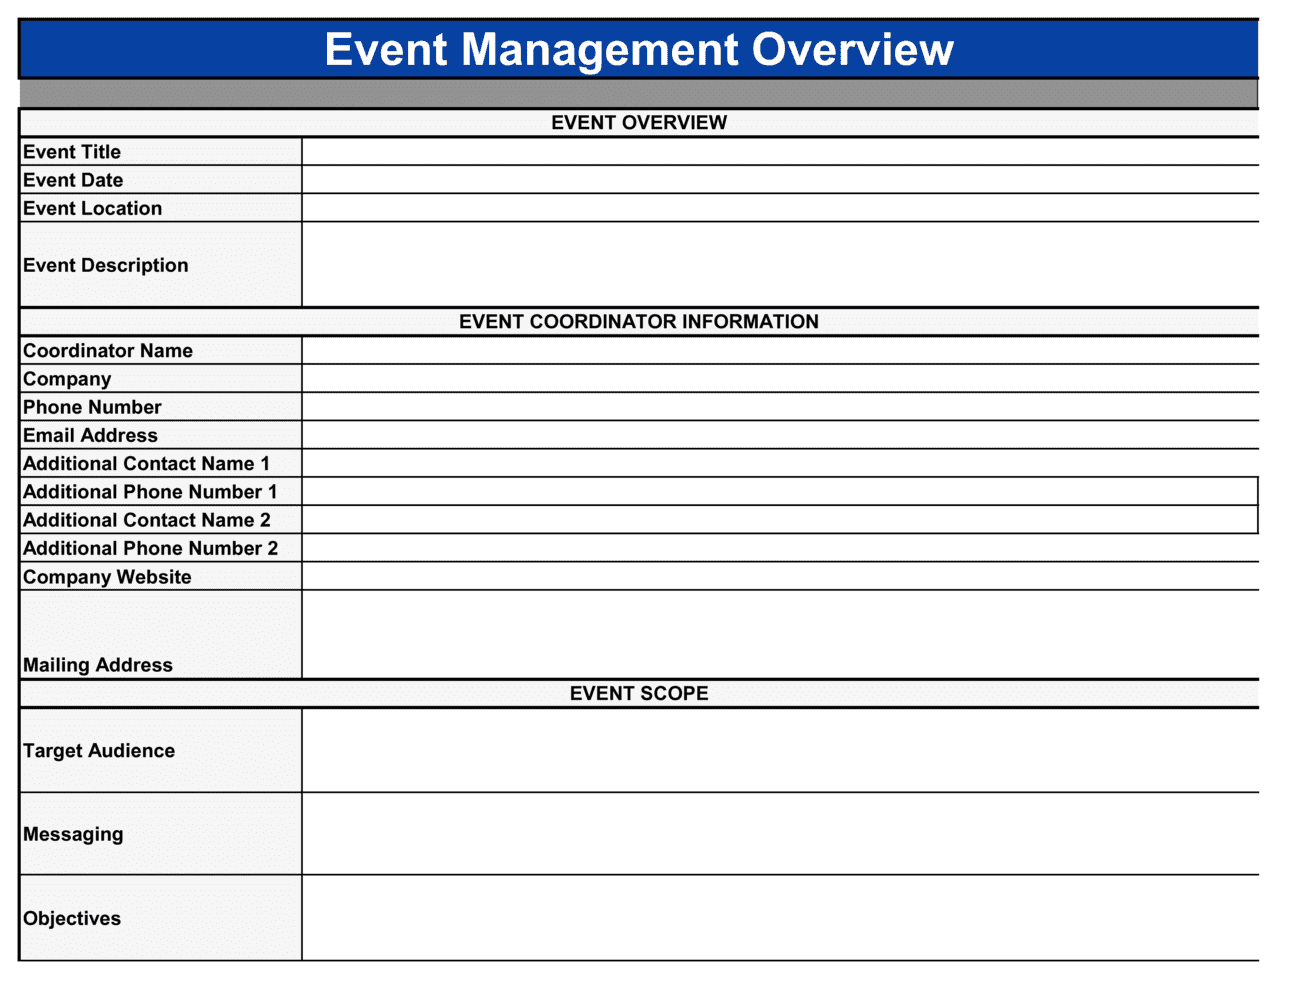 Business-in-a-Box's Event Management Template Template